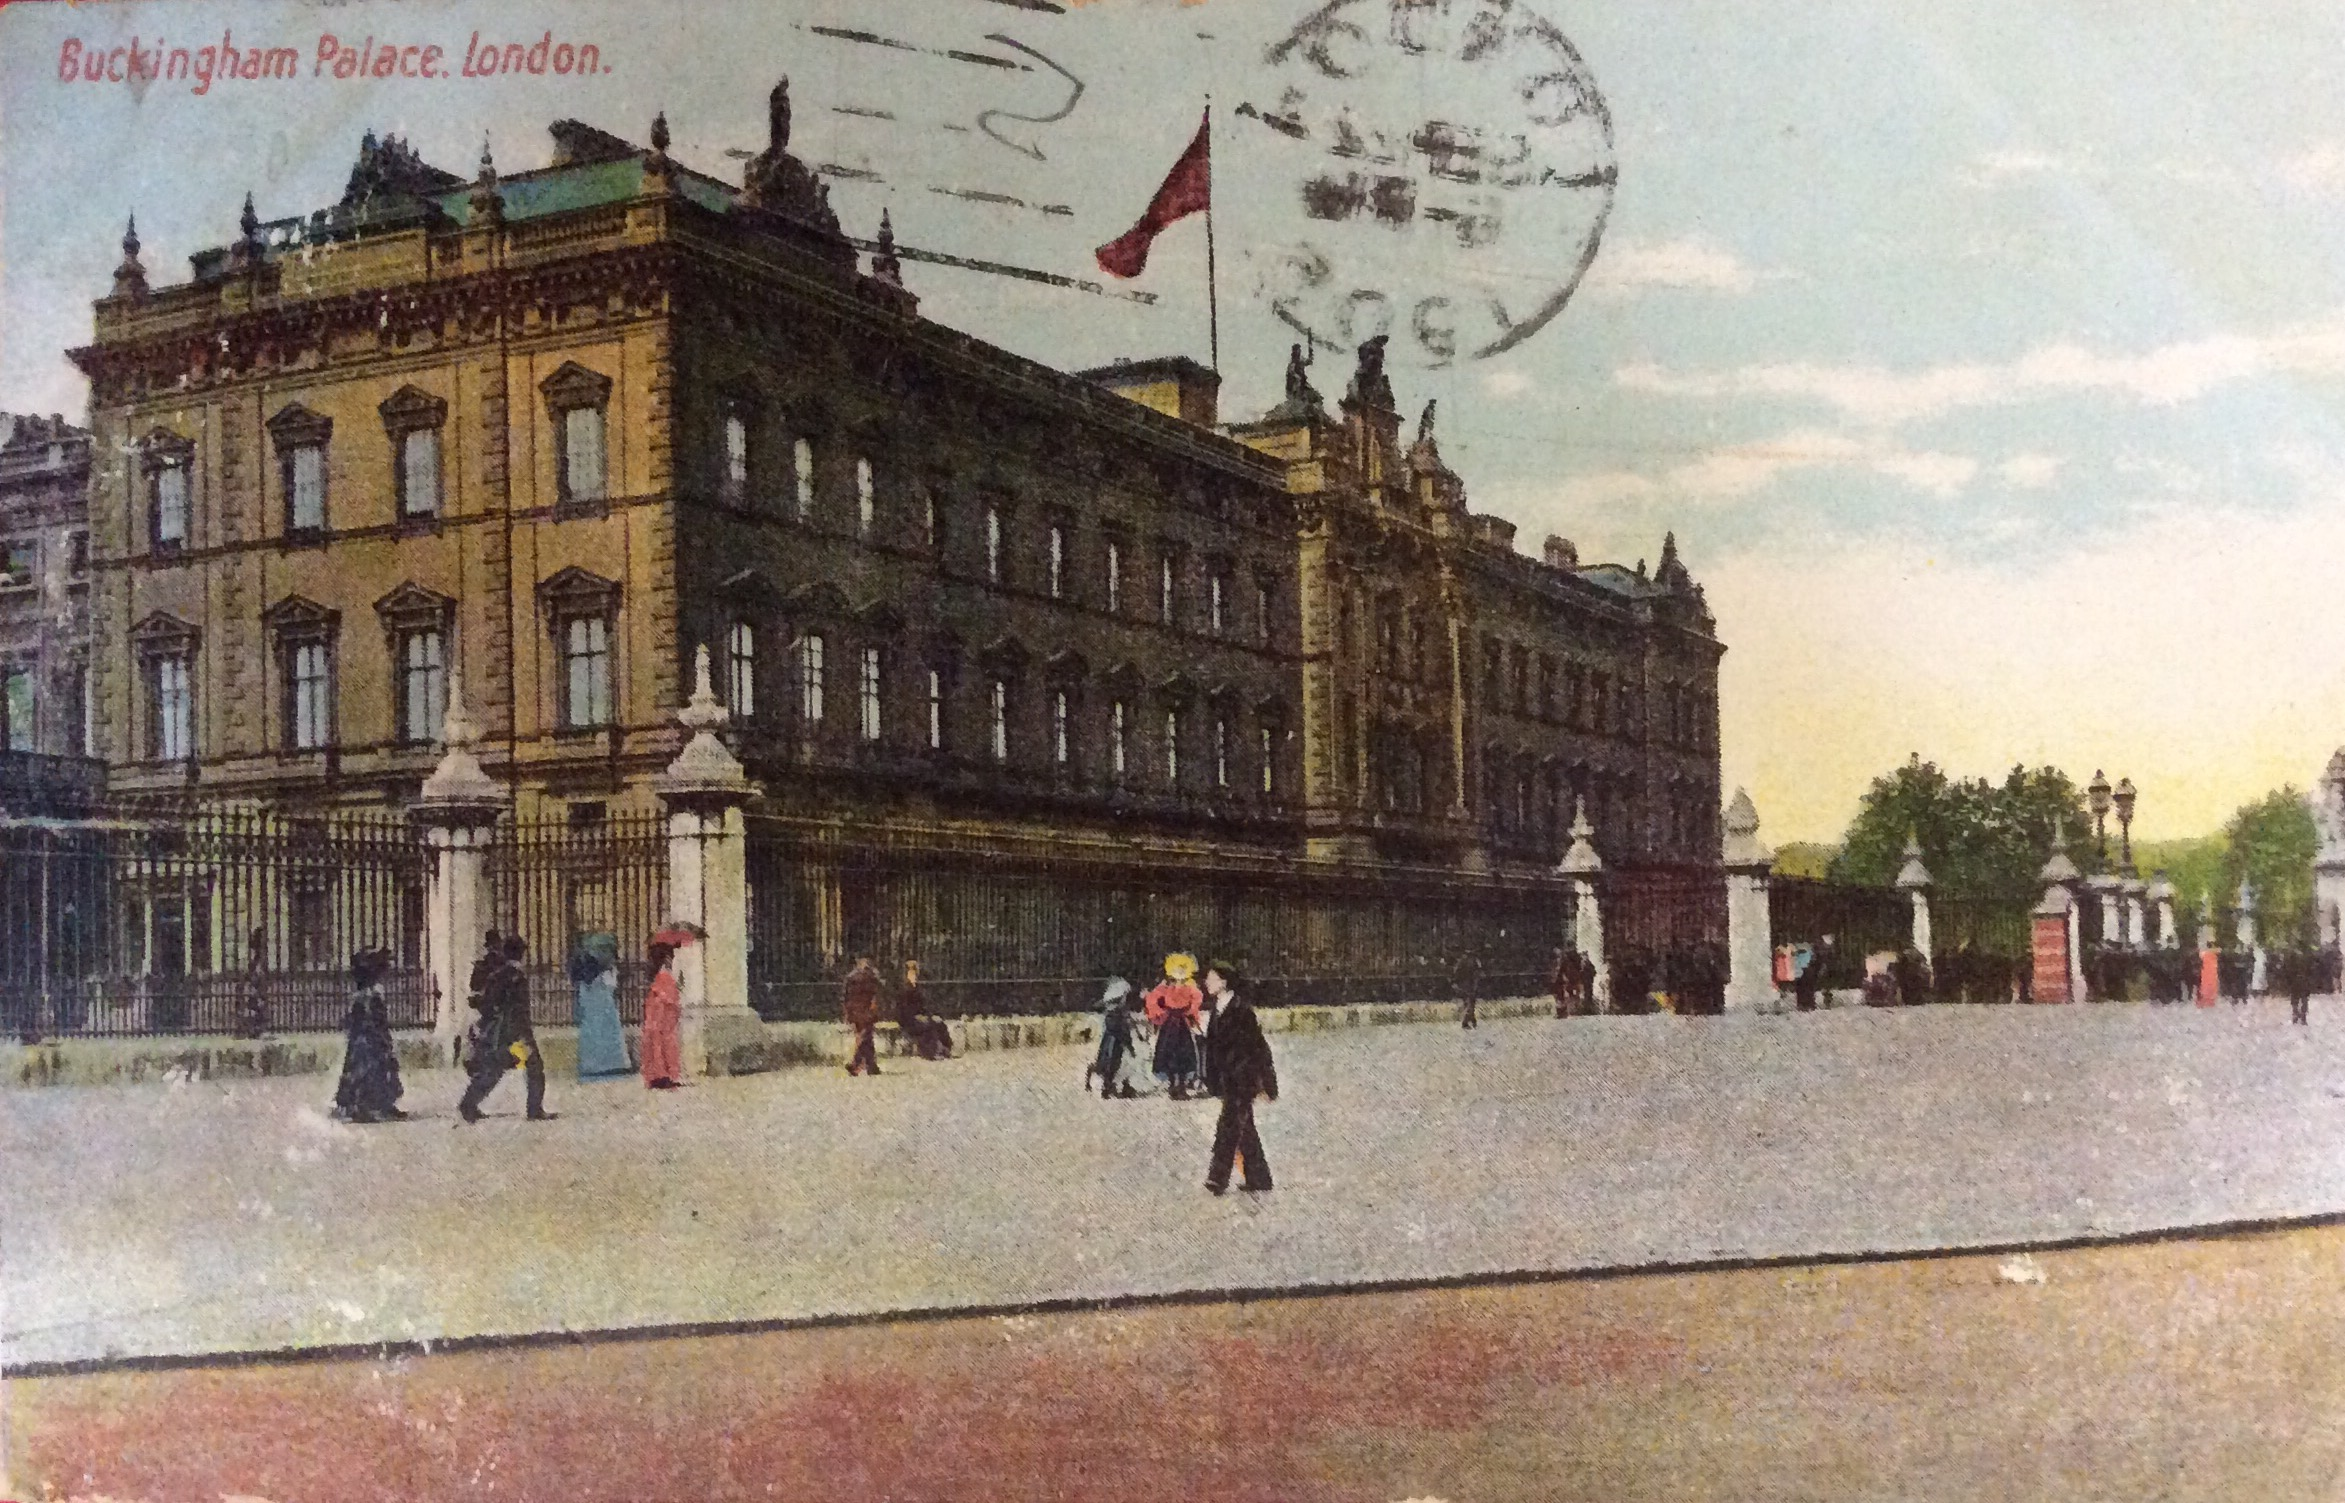 1905 A Tourist Postcard From London